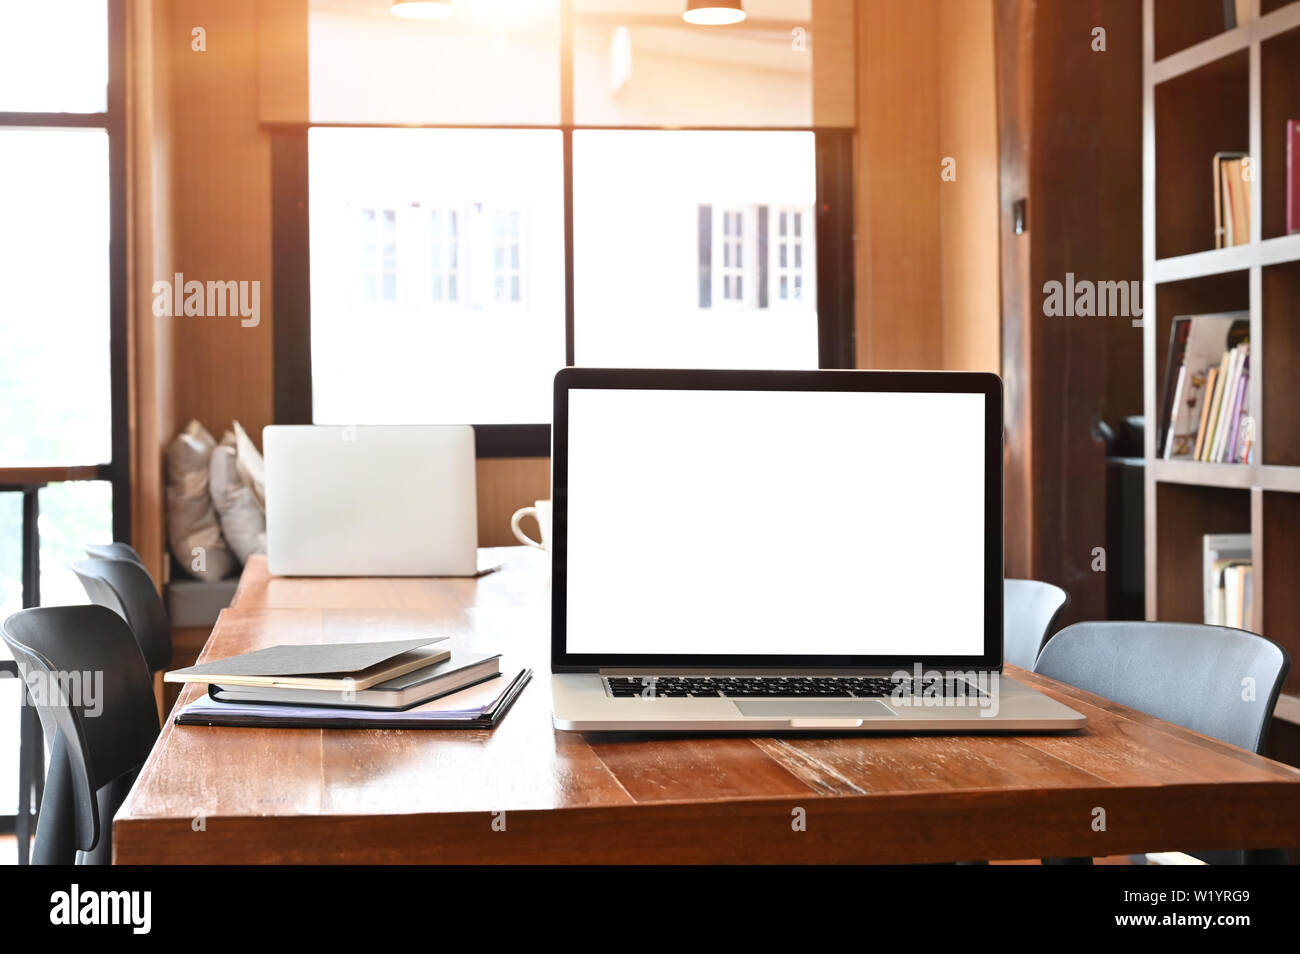 Laptop Computer Empty Screen On Wooden Table In Library Room Stock Photo Alamy